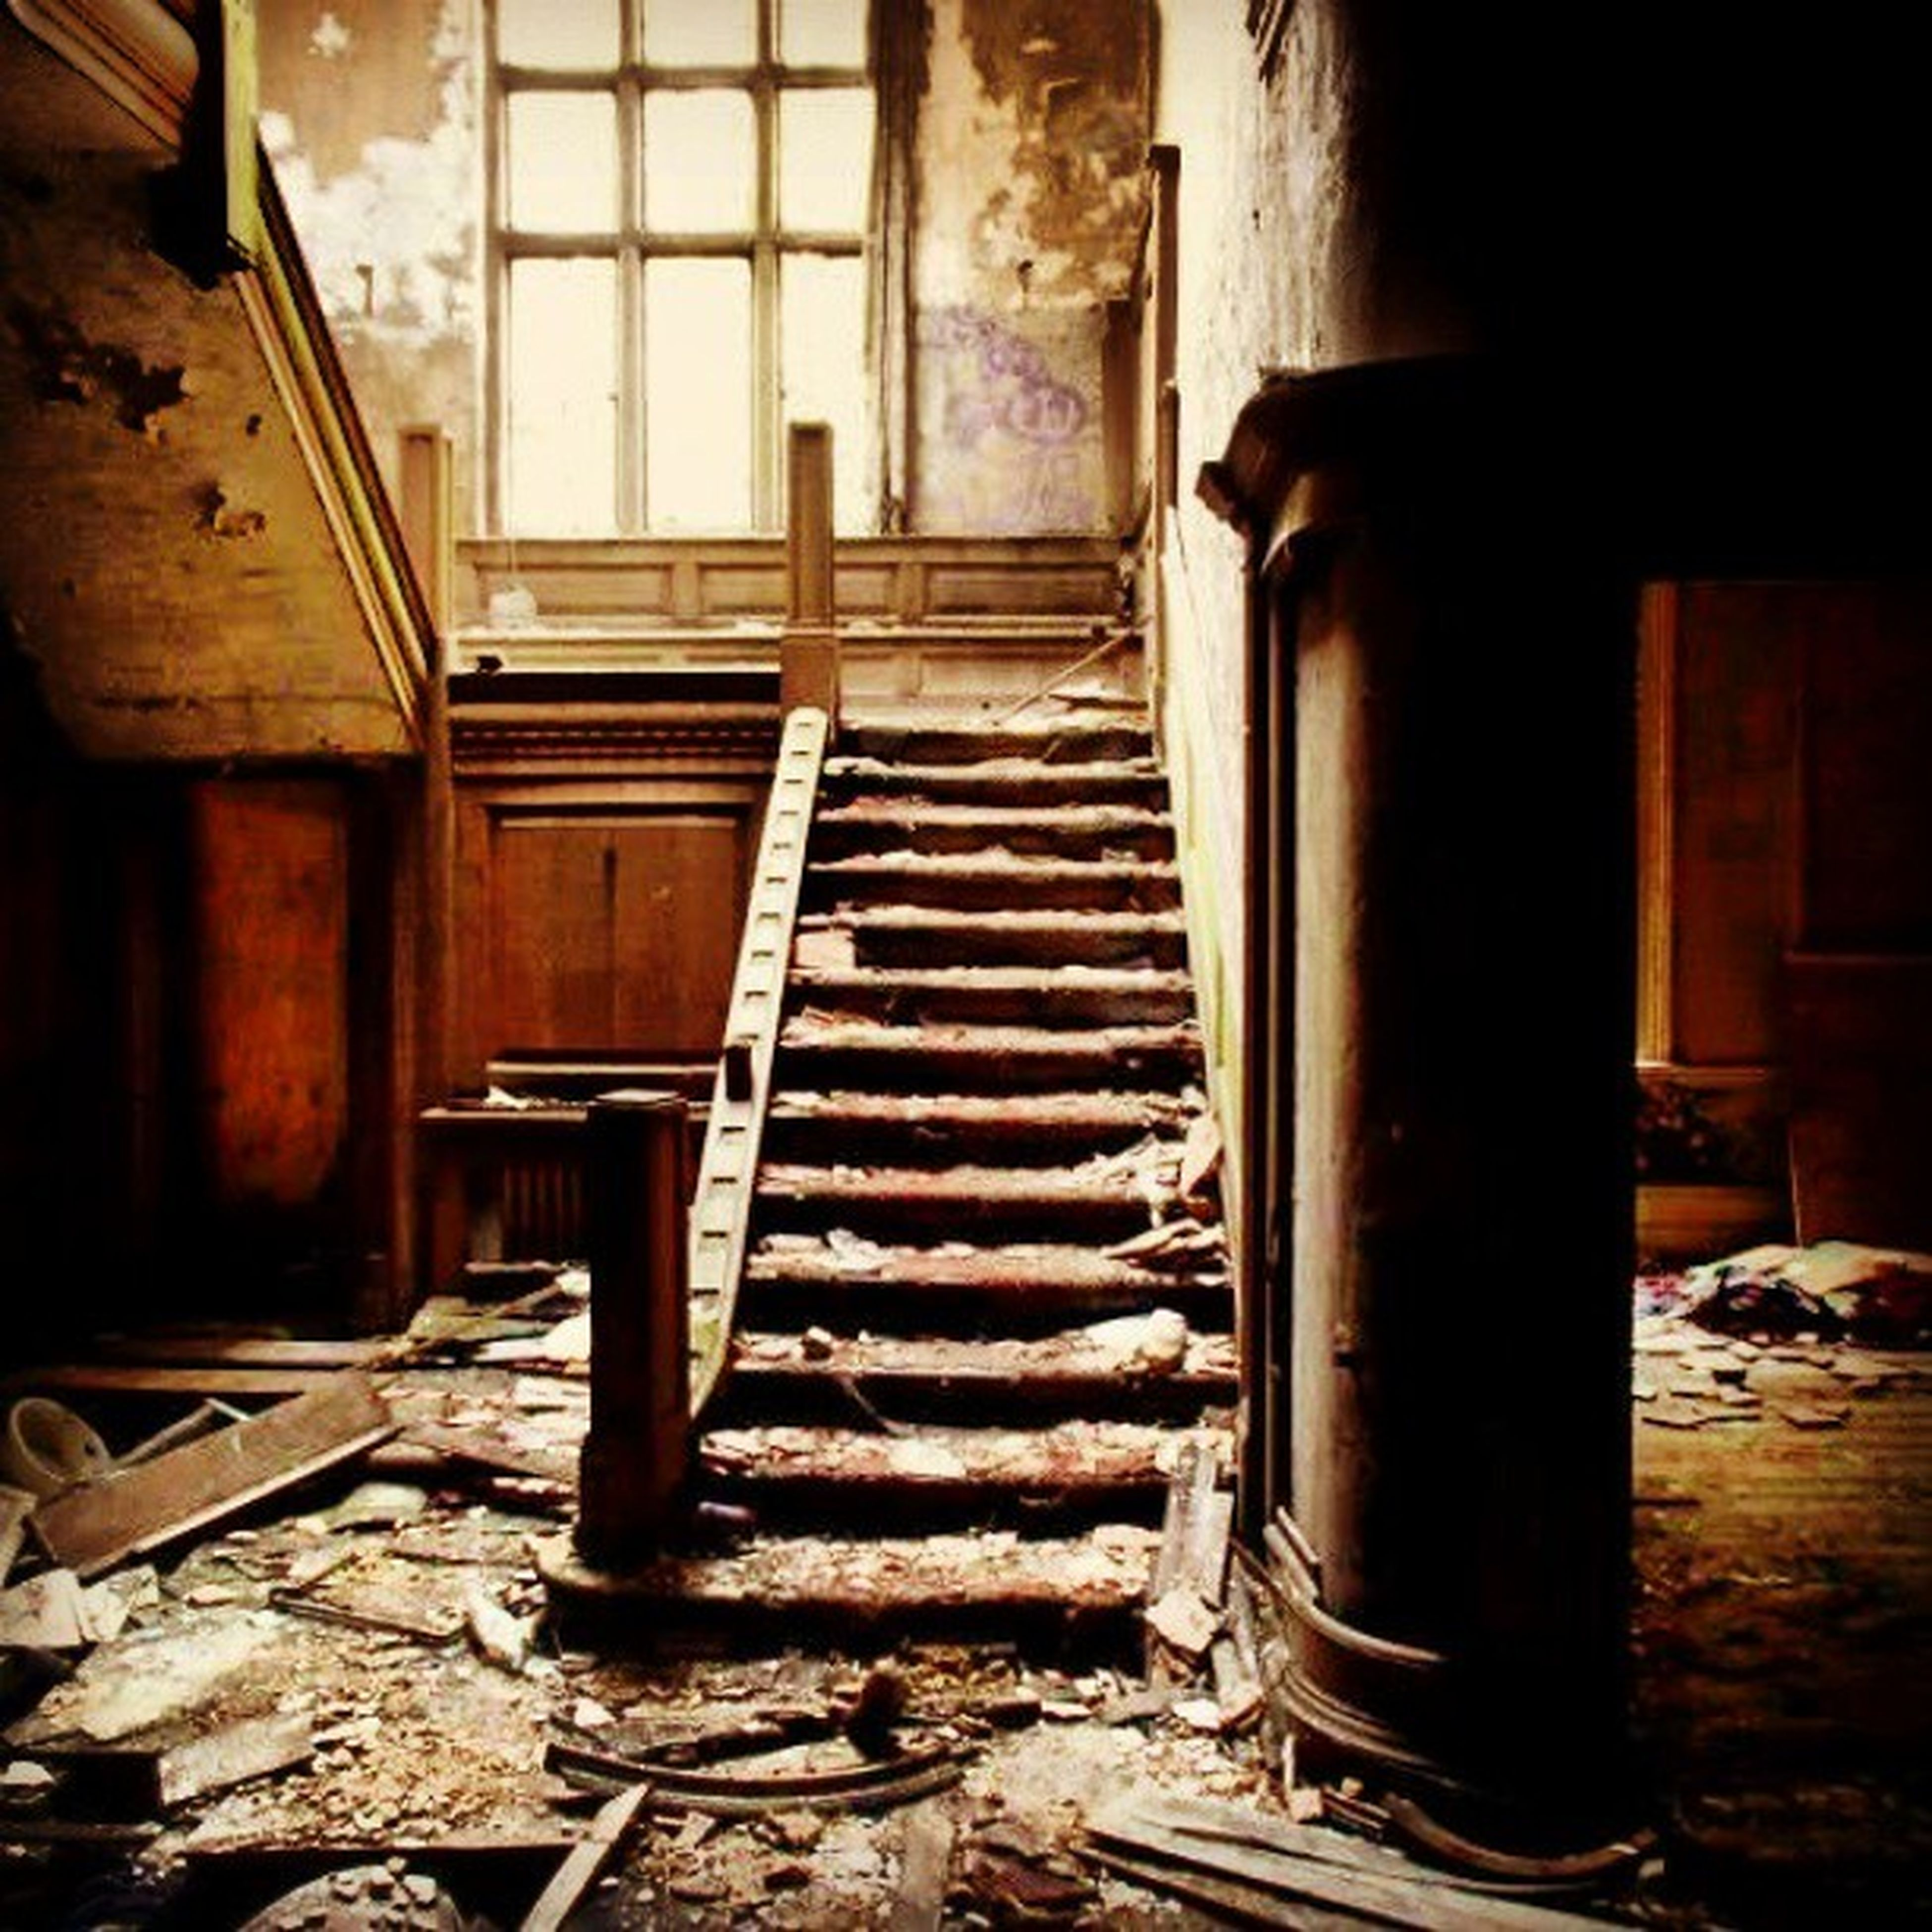 indoors, abandoned, old, obsolete, run-down, damaged, deterioration, built structure, architecture, weathered, wood - material, bad condition, house, interior, ruined, no people, door, destruction, absence, day